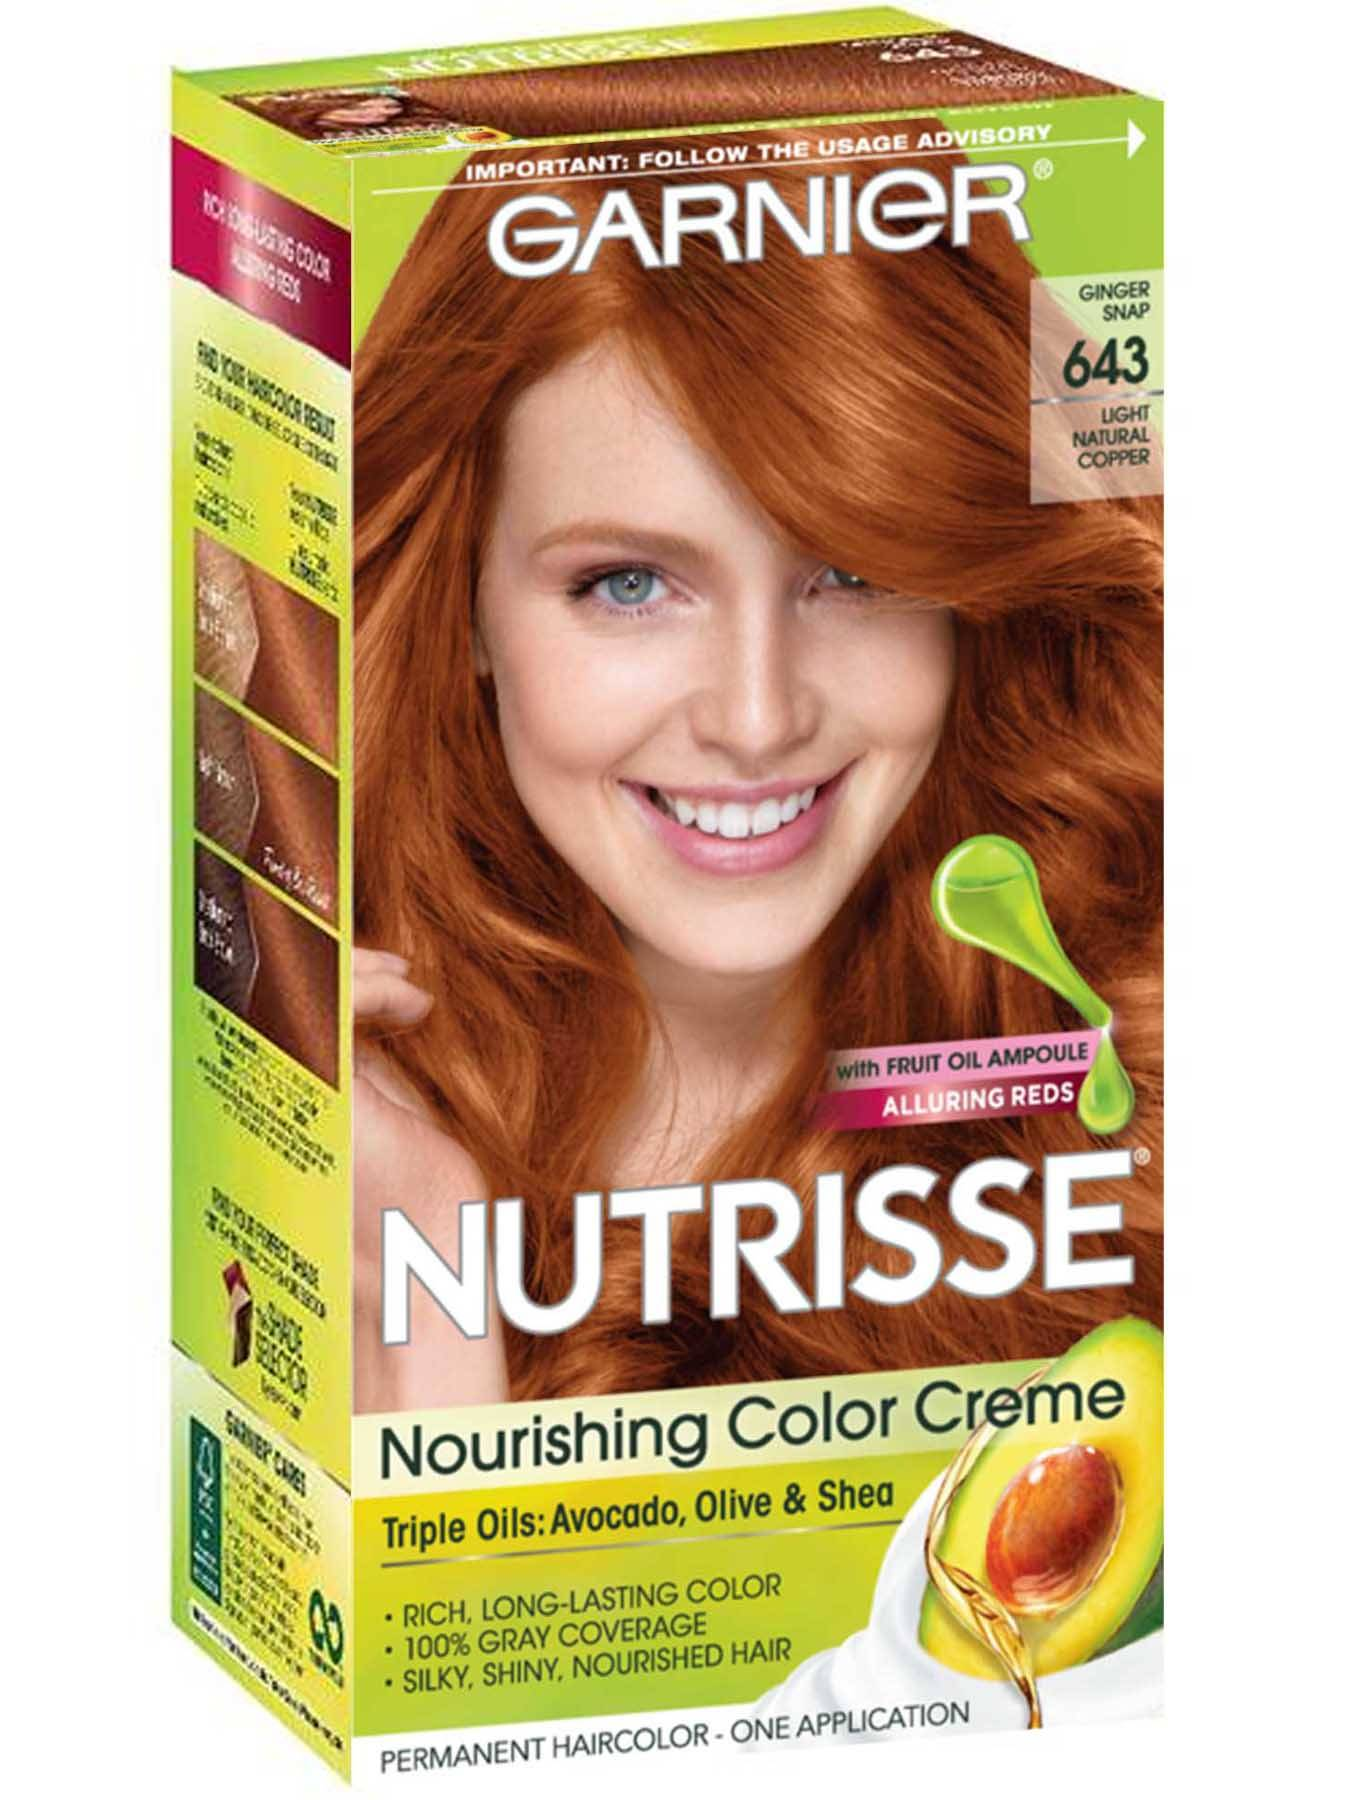 Nutrisse Nourishing Color Creme - Light Intense Copper - Garnier